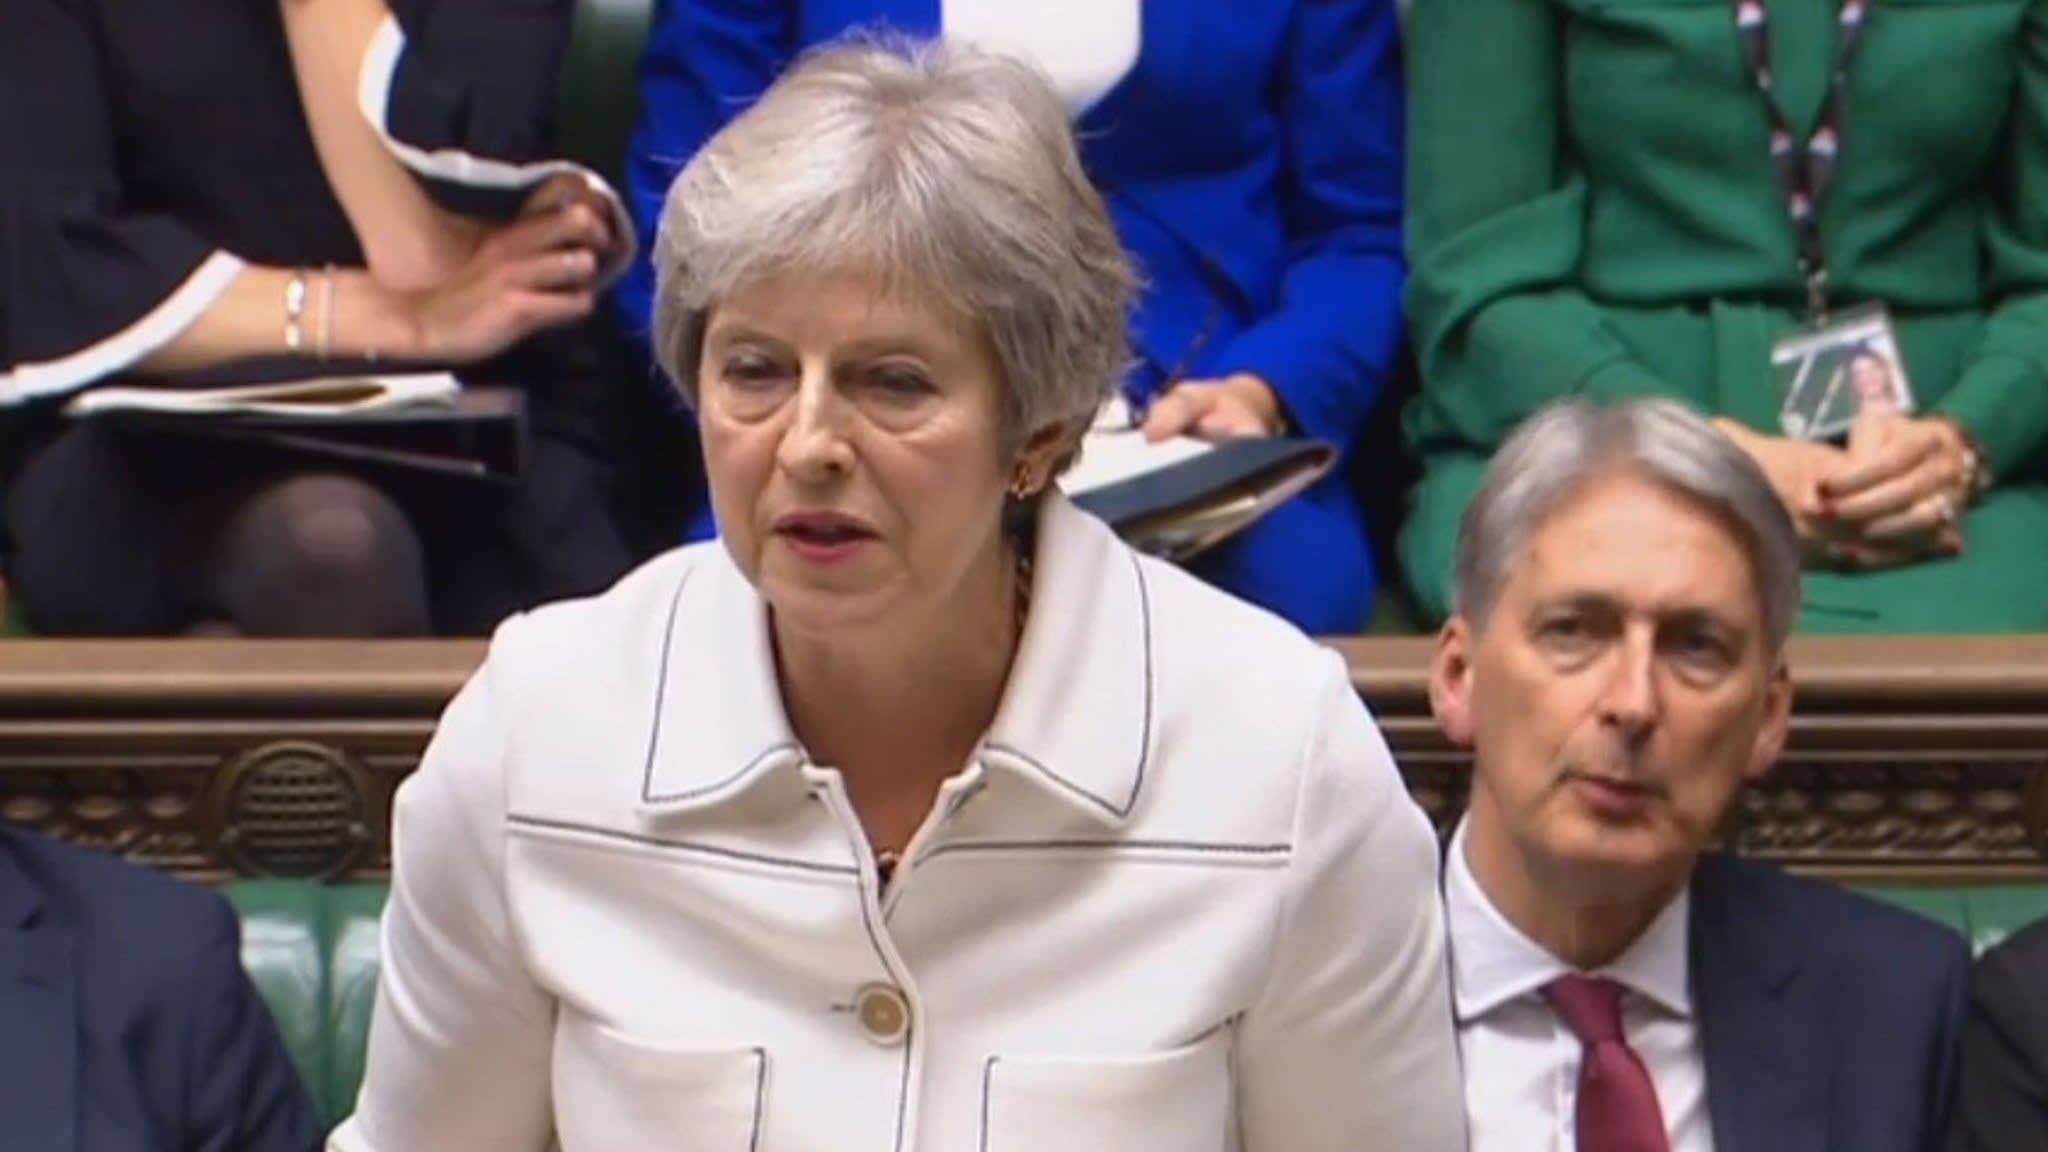 May to EU: Do not let Irish border issue derail Brexit talks